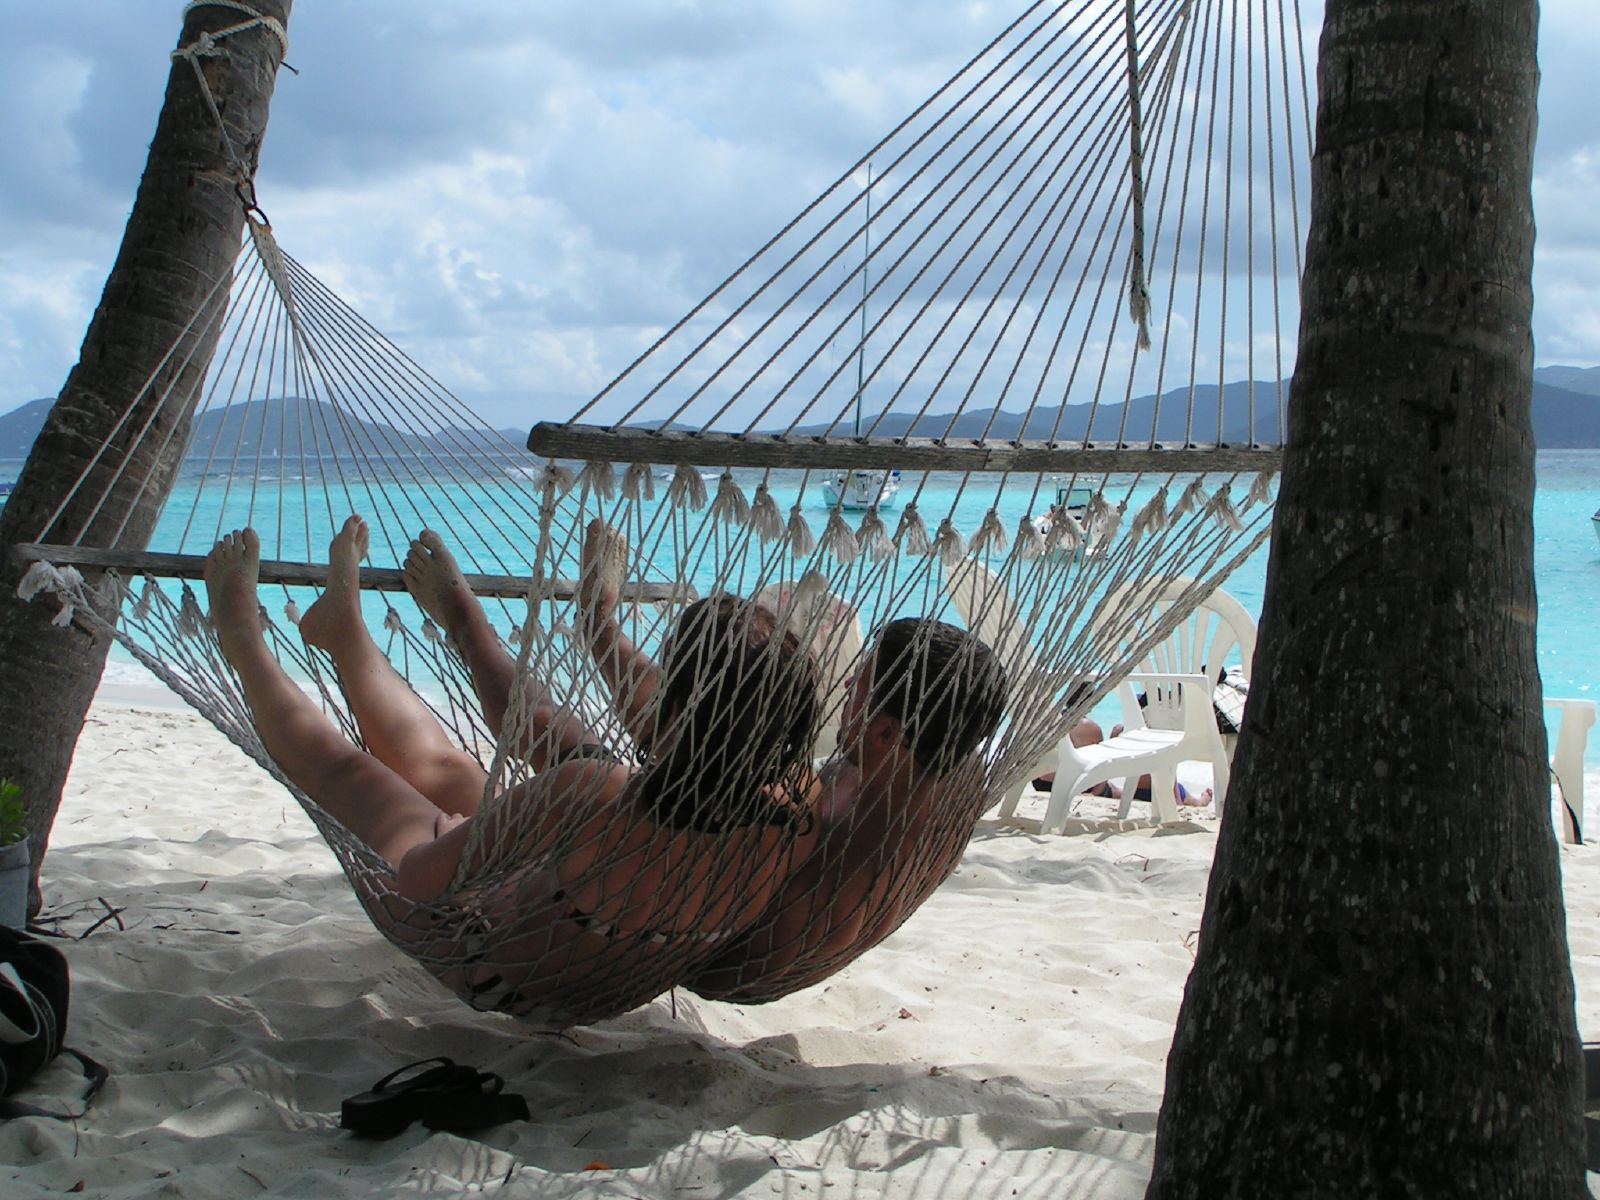 FileCouple in Hammockjpg  Wikimedia Commons